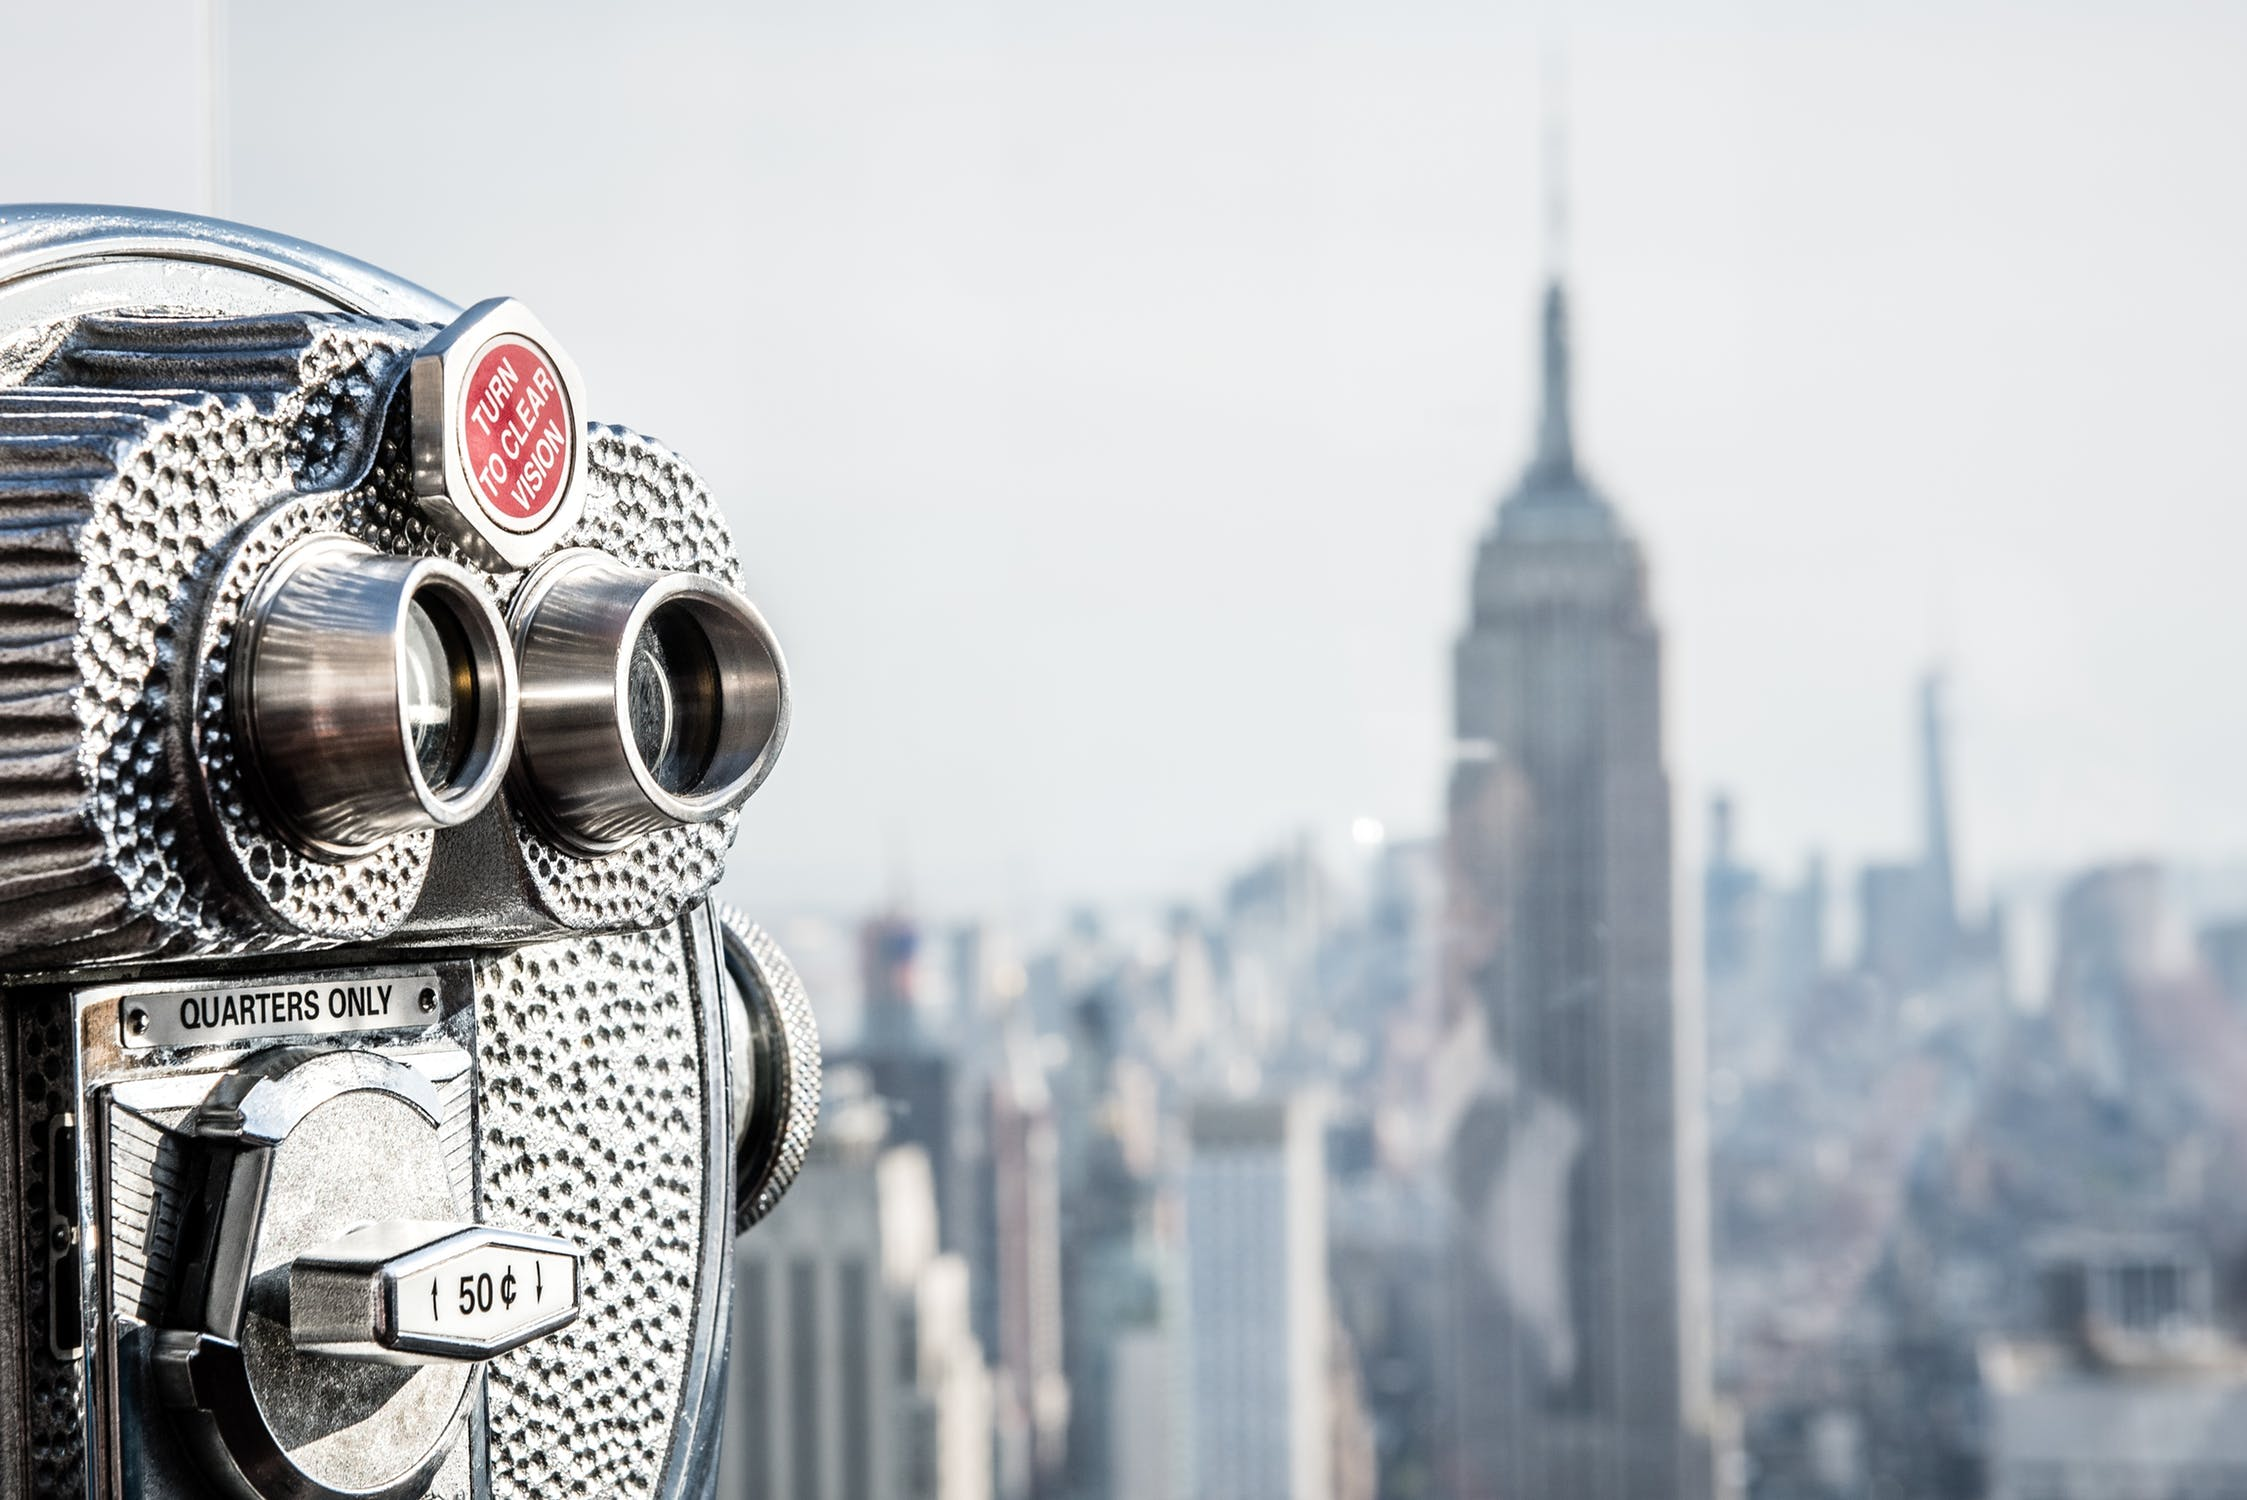 new york city viewfinder